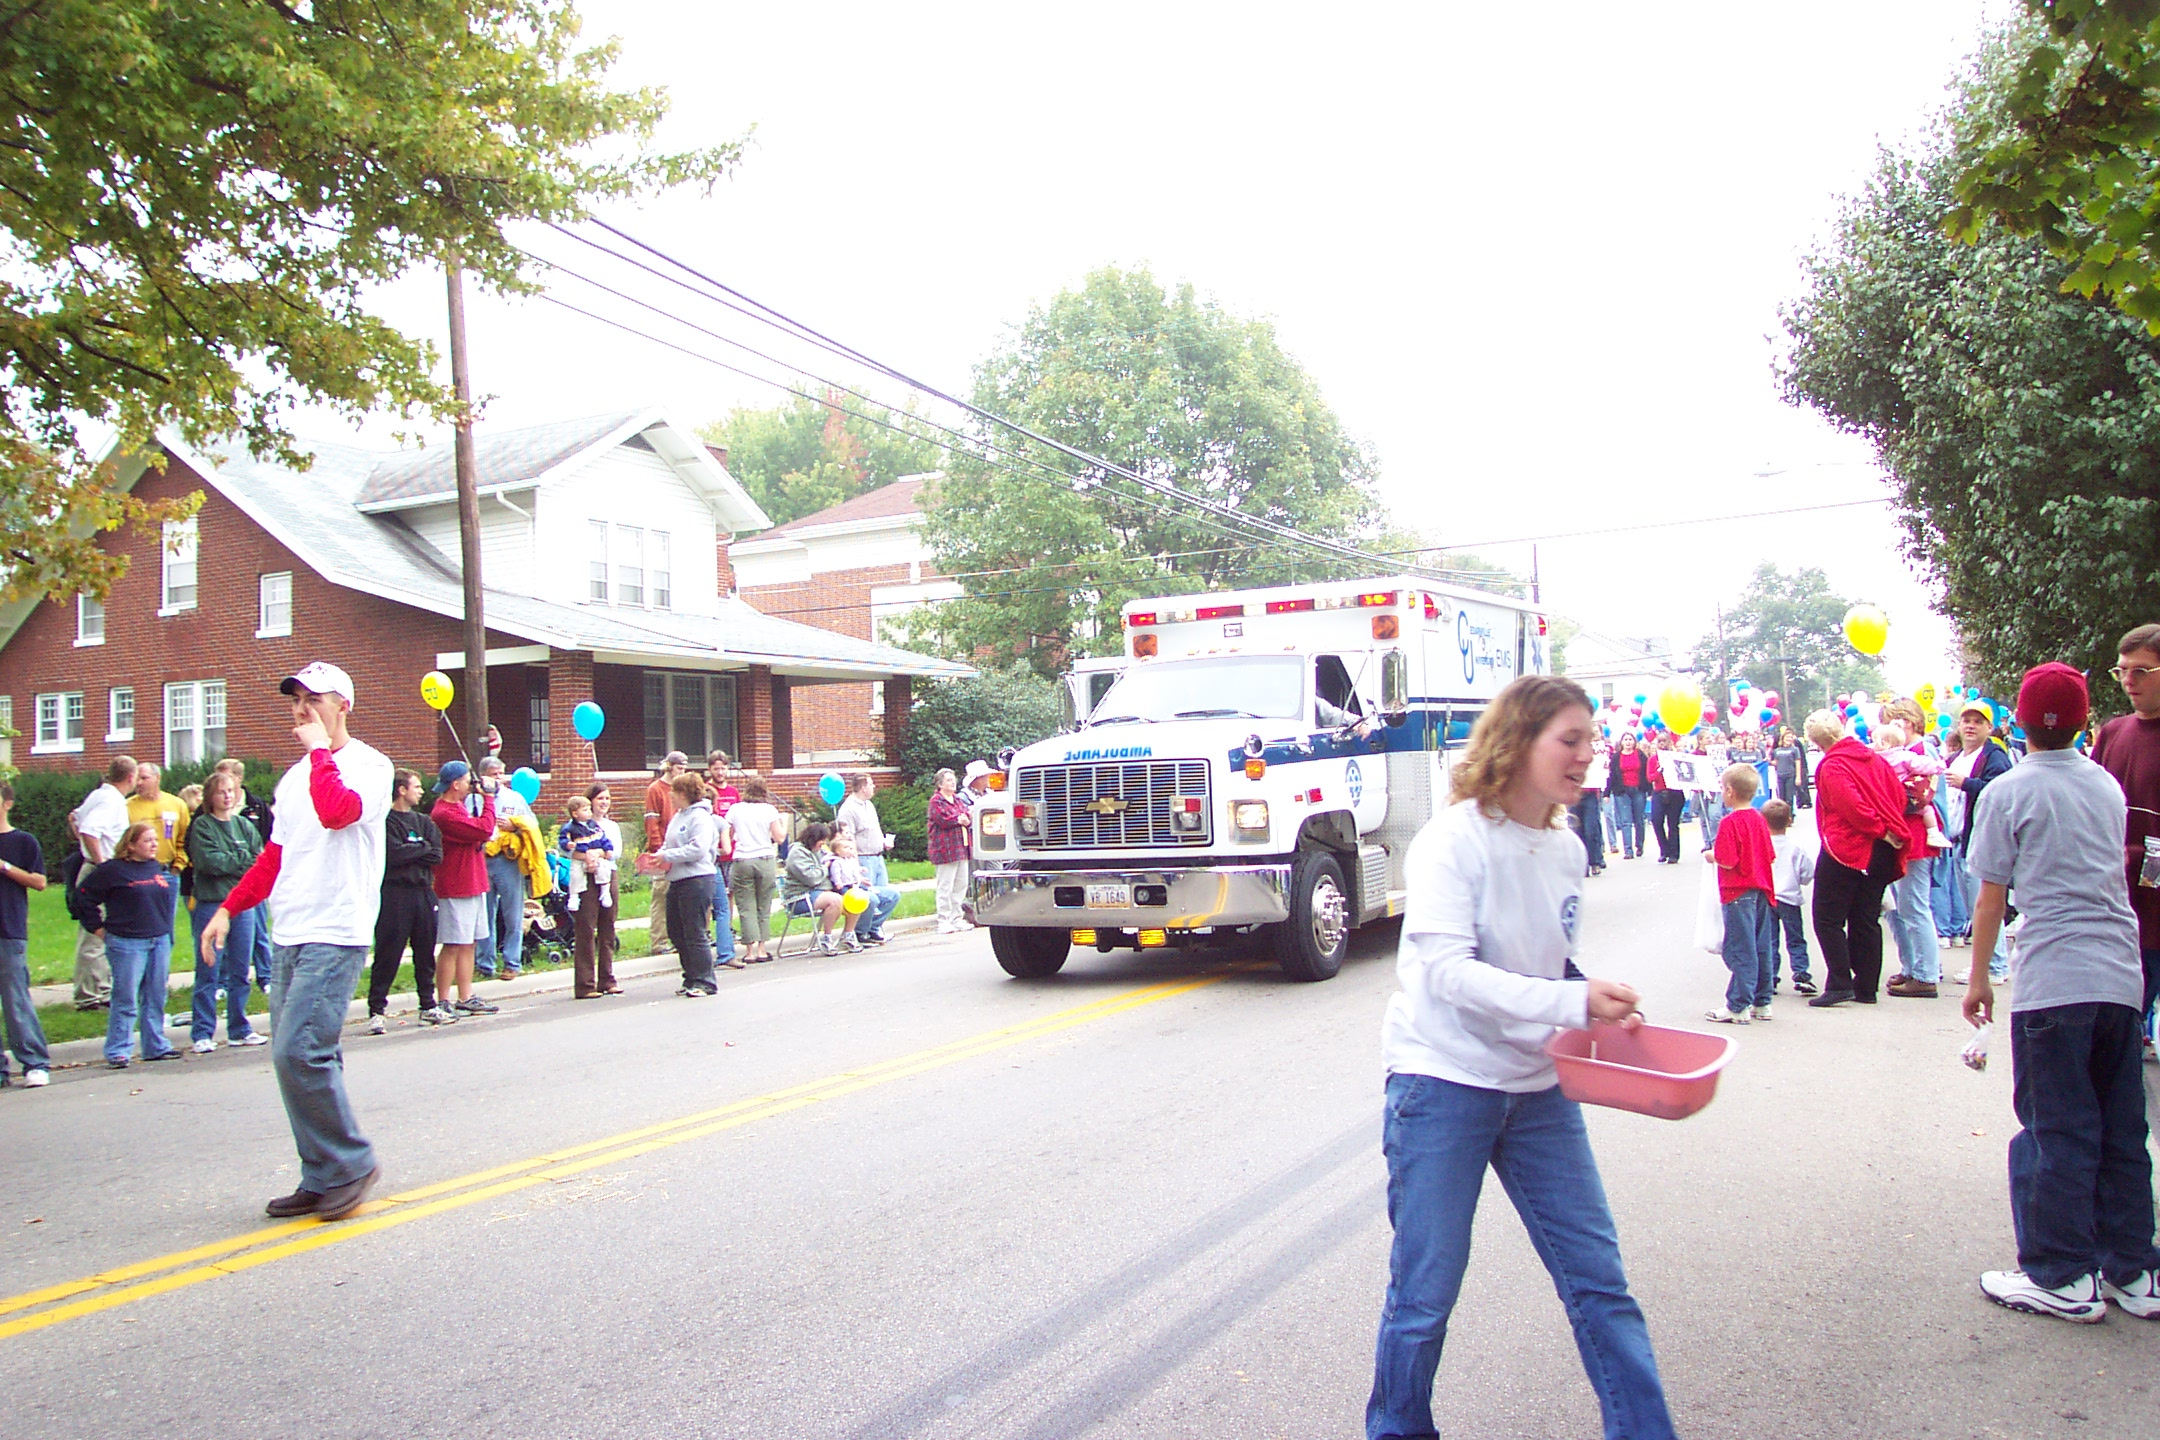 ambulance in parade